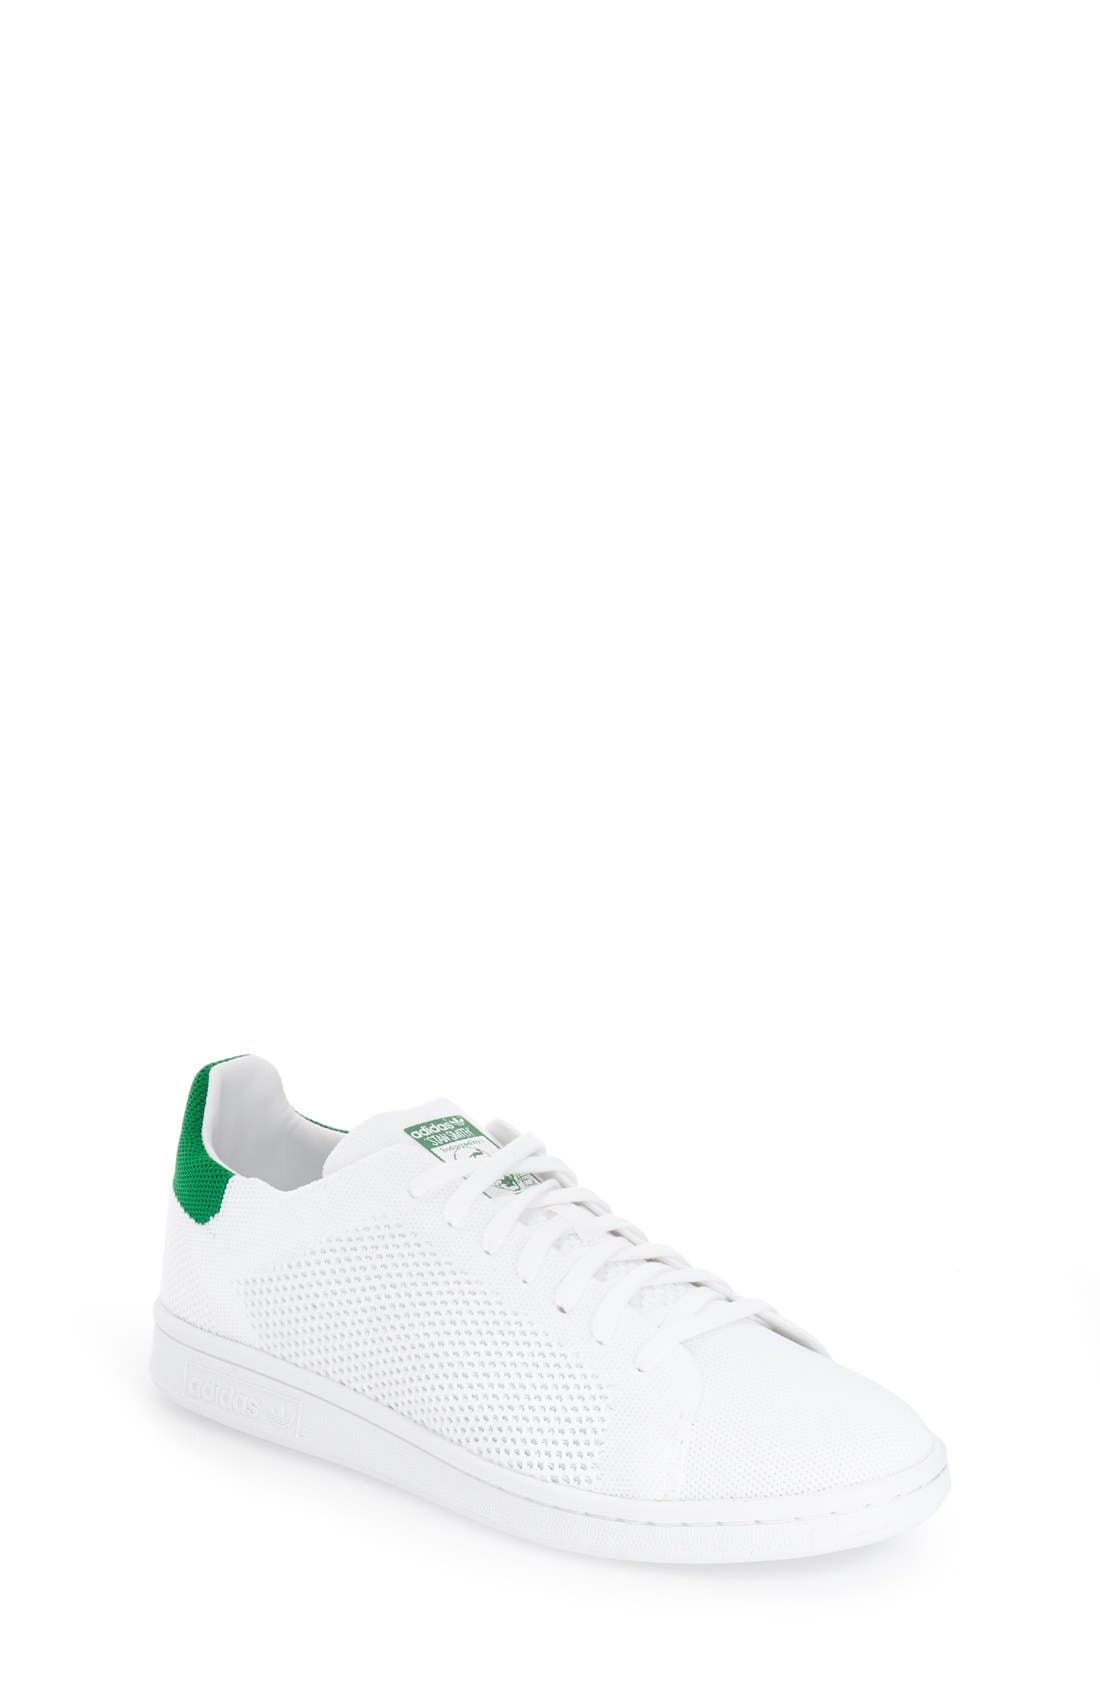 Main Image - adidas \u0027Stan Smith - Primeknit\u0027 Sneaker (Big Kid)